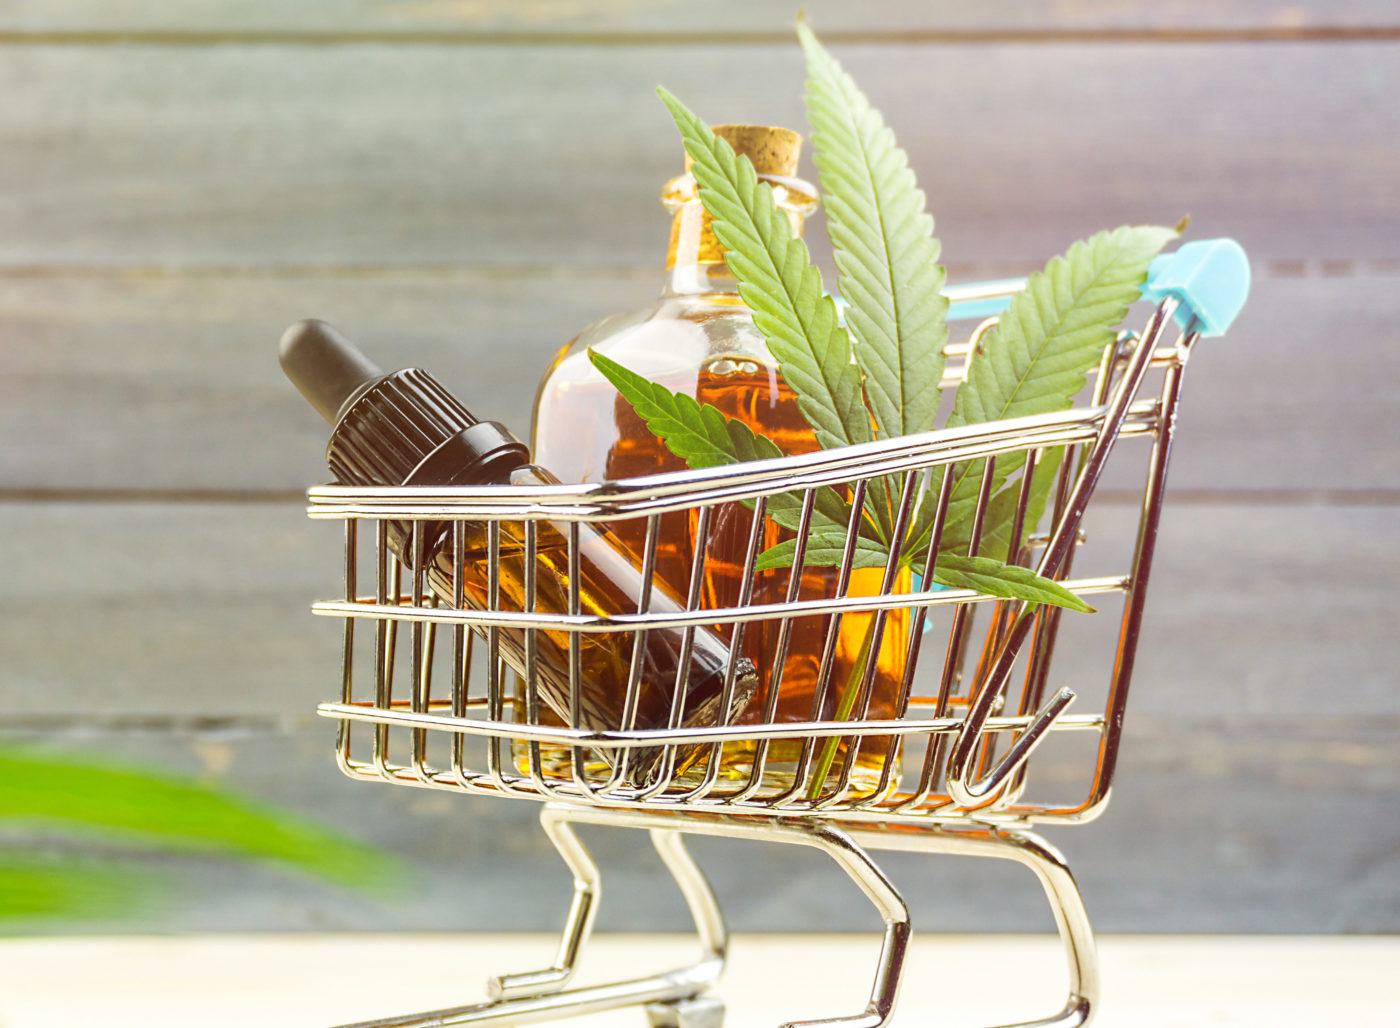 Shopping for Cannabinoids: A Buyer's Guide